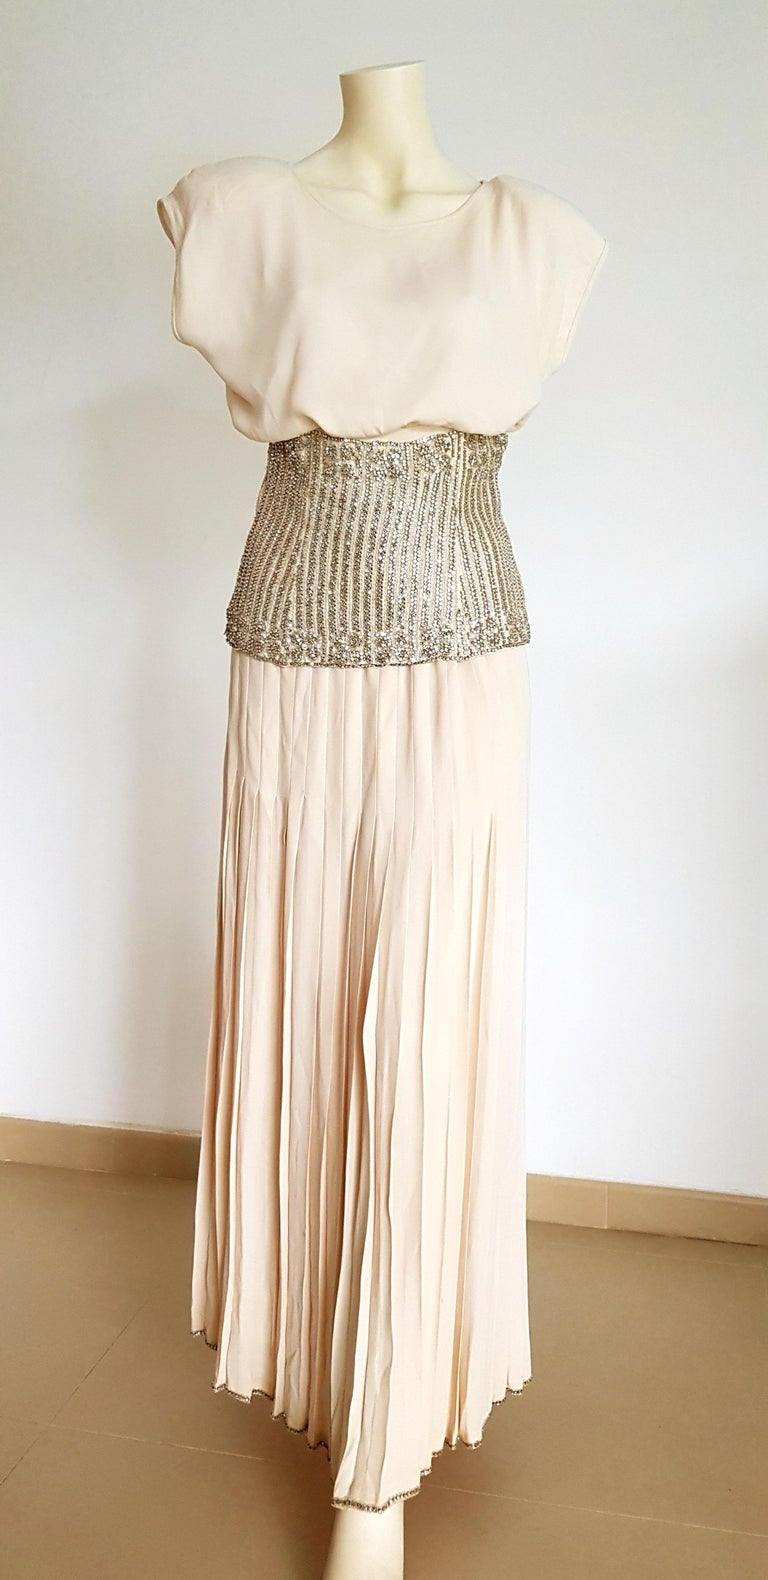 VALENTINO Haute Couture silk top and skirt, swarovski diamonds band combined with the top, evening dress - Unworn. .. SIZE: equivalent to about Small / Medium, please review approx measurements as follows in cm.  TOP: lenght 60 with the band, chest